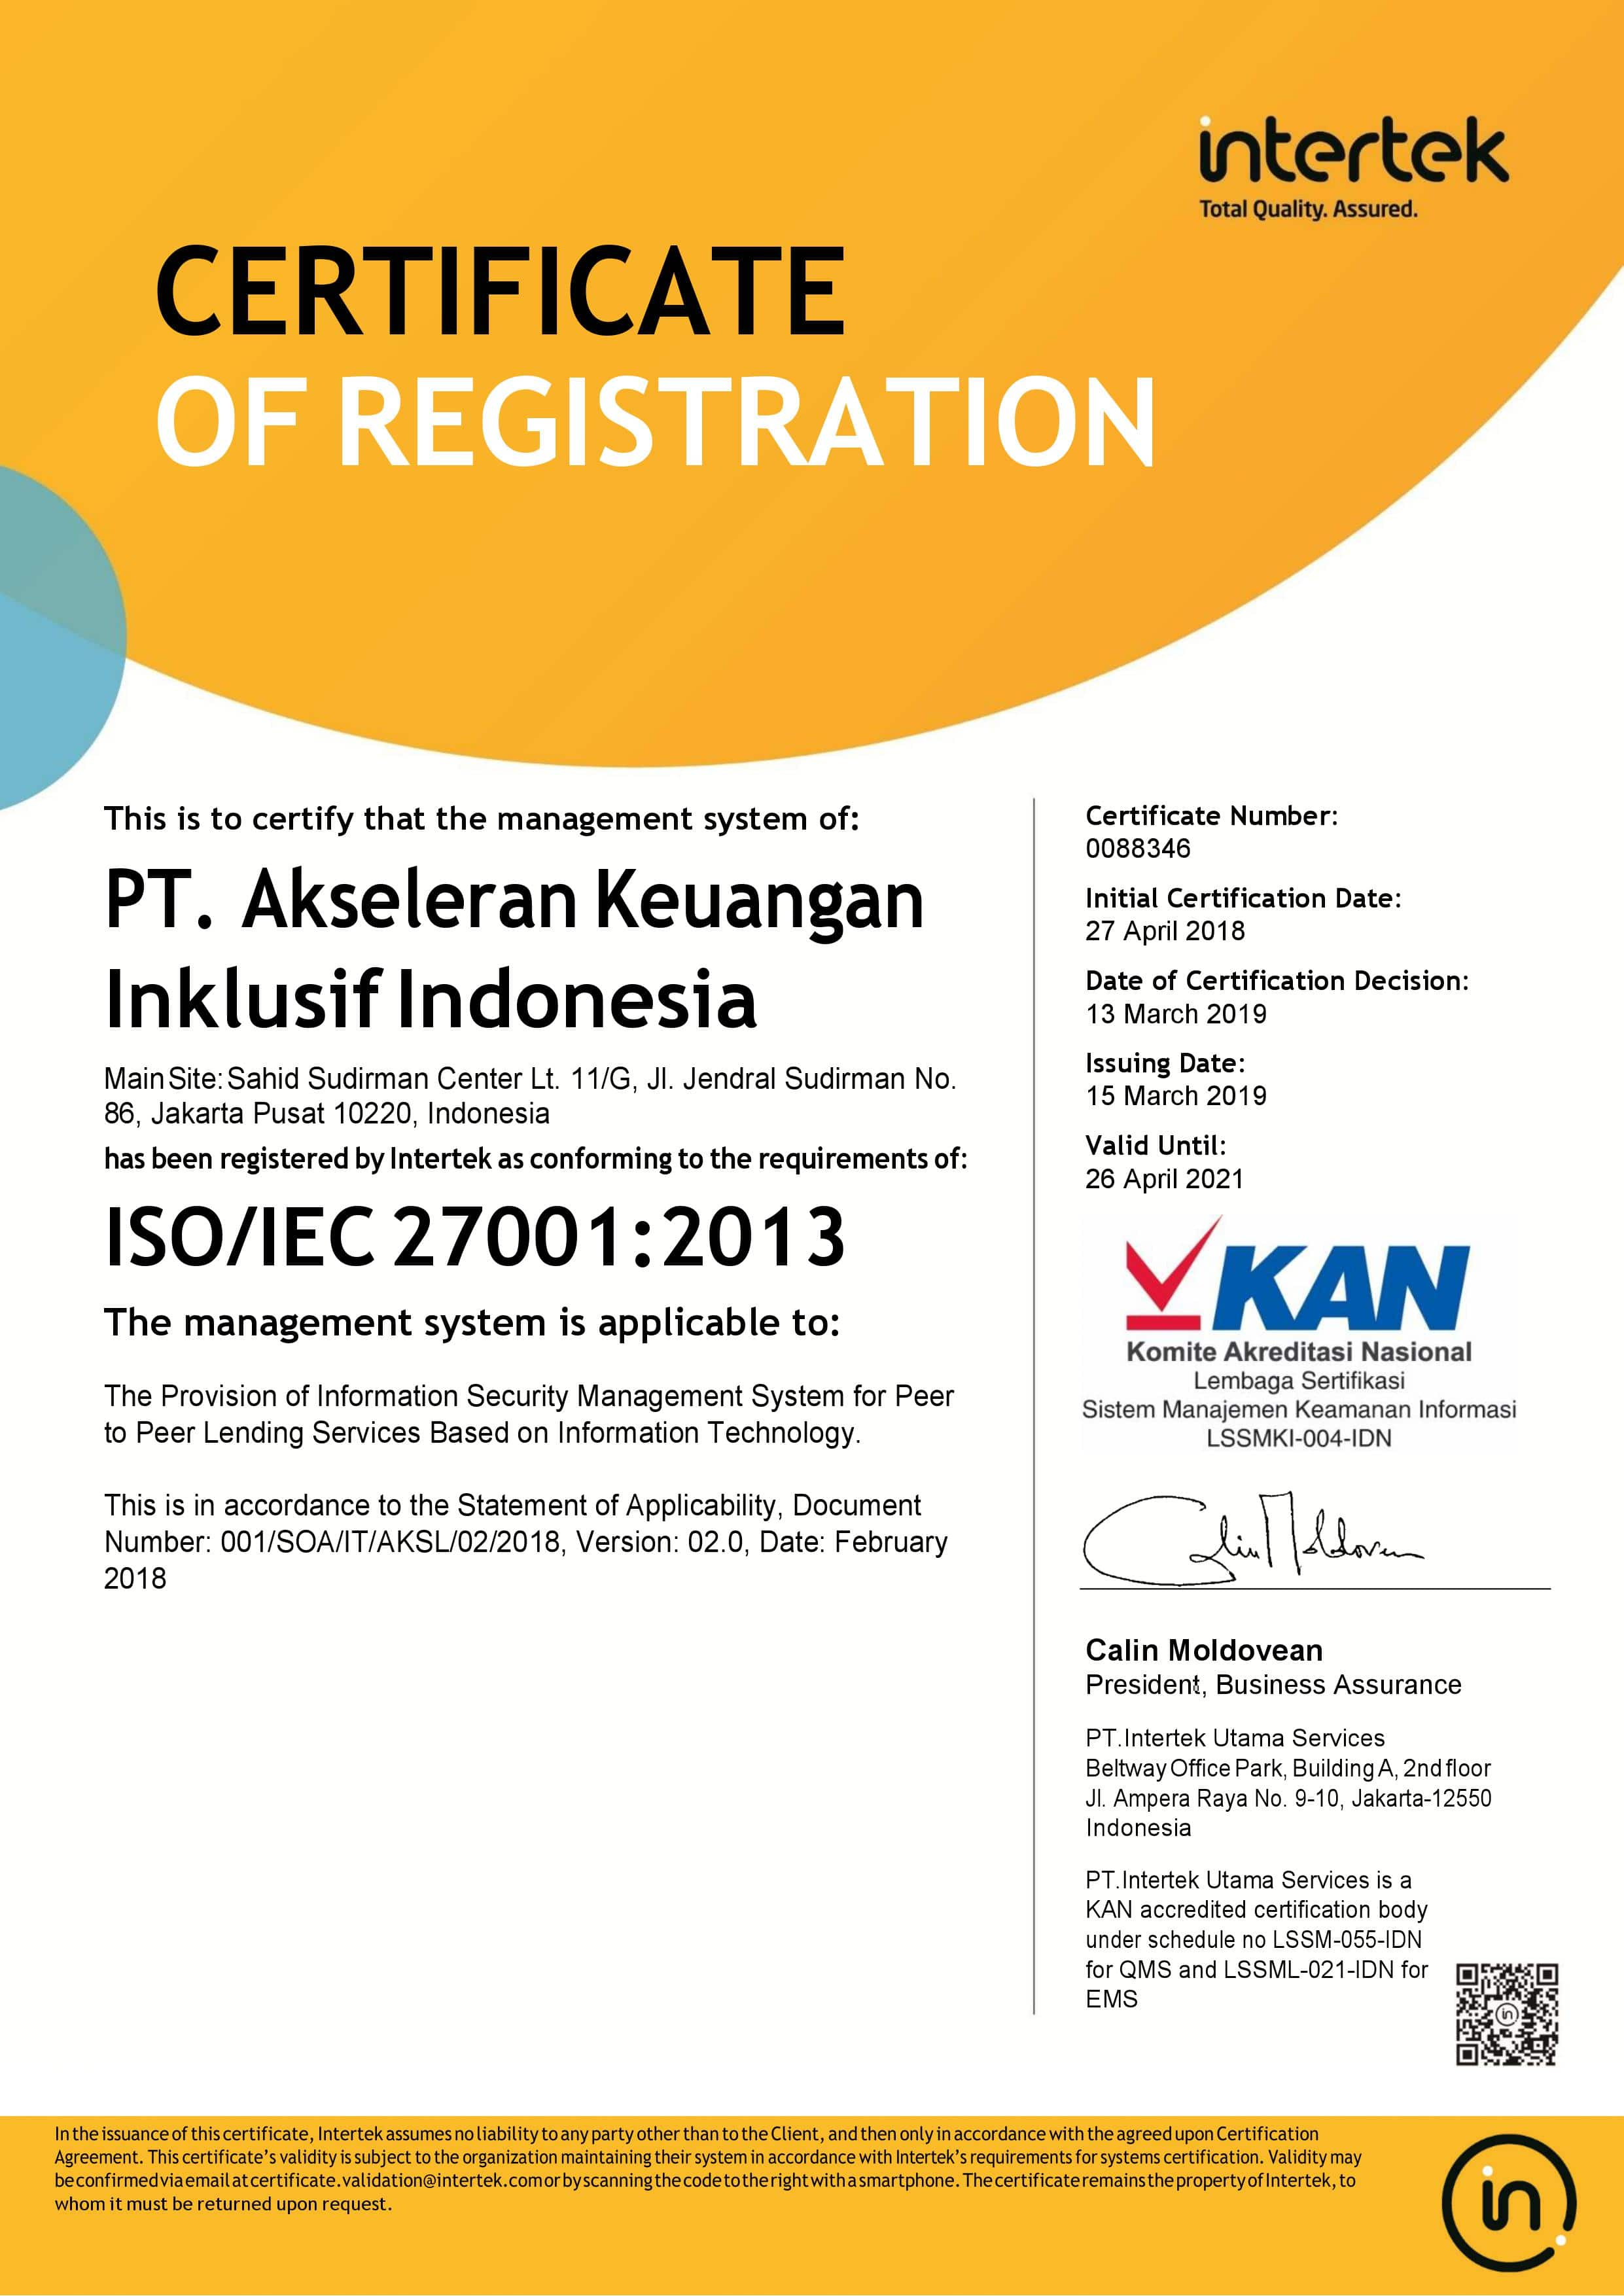 ISO 270012013